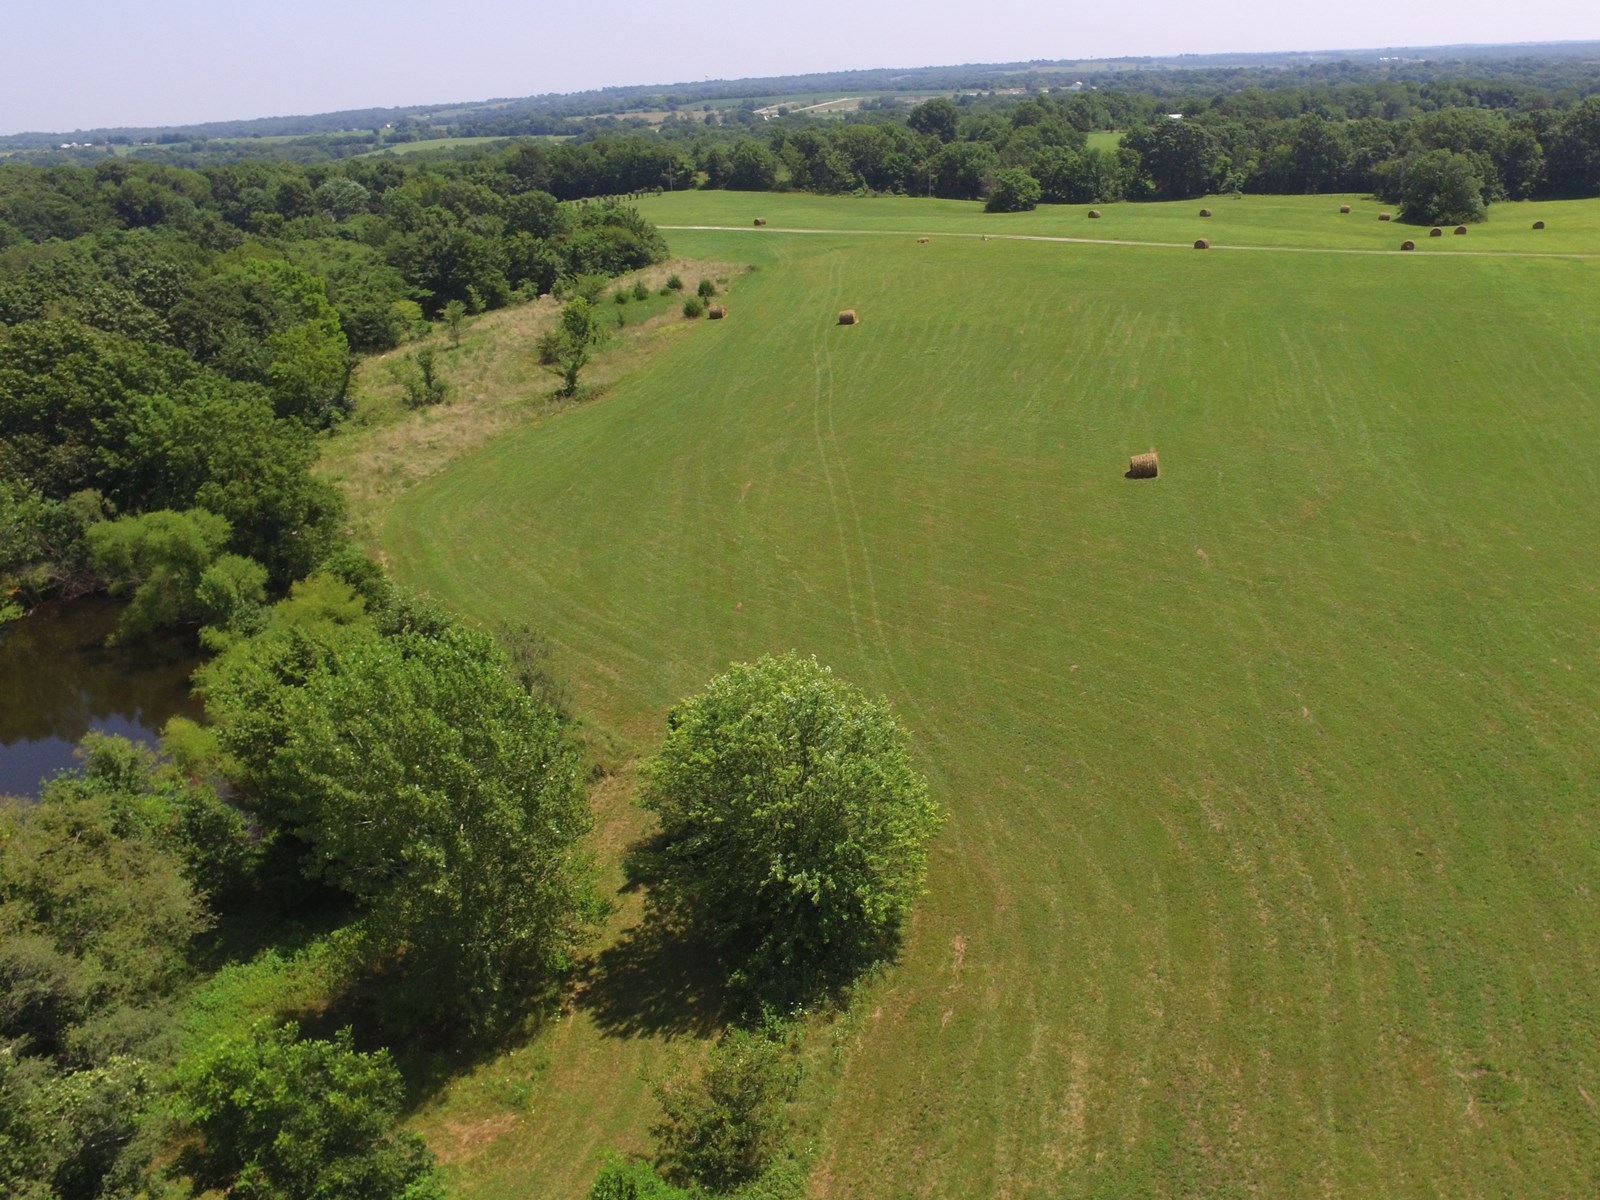 20 ACRE +/- IN SHERWOOD SCH DIST, CREIGHTON, CASS COUNTY MO